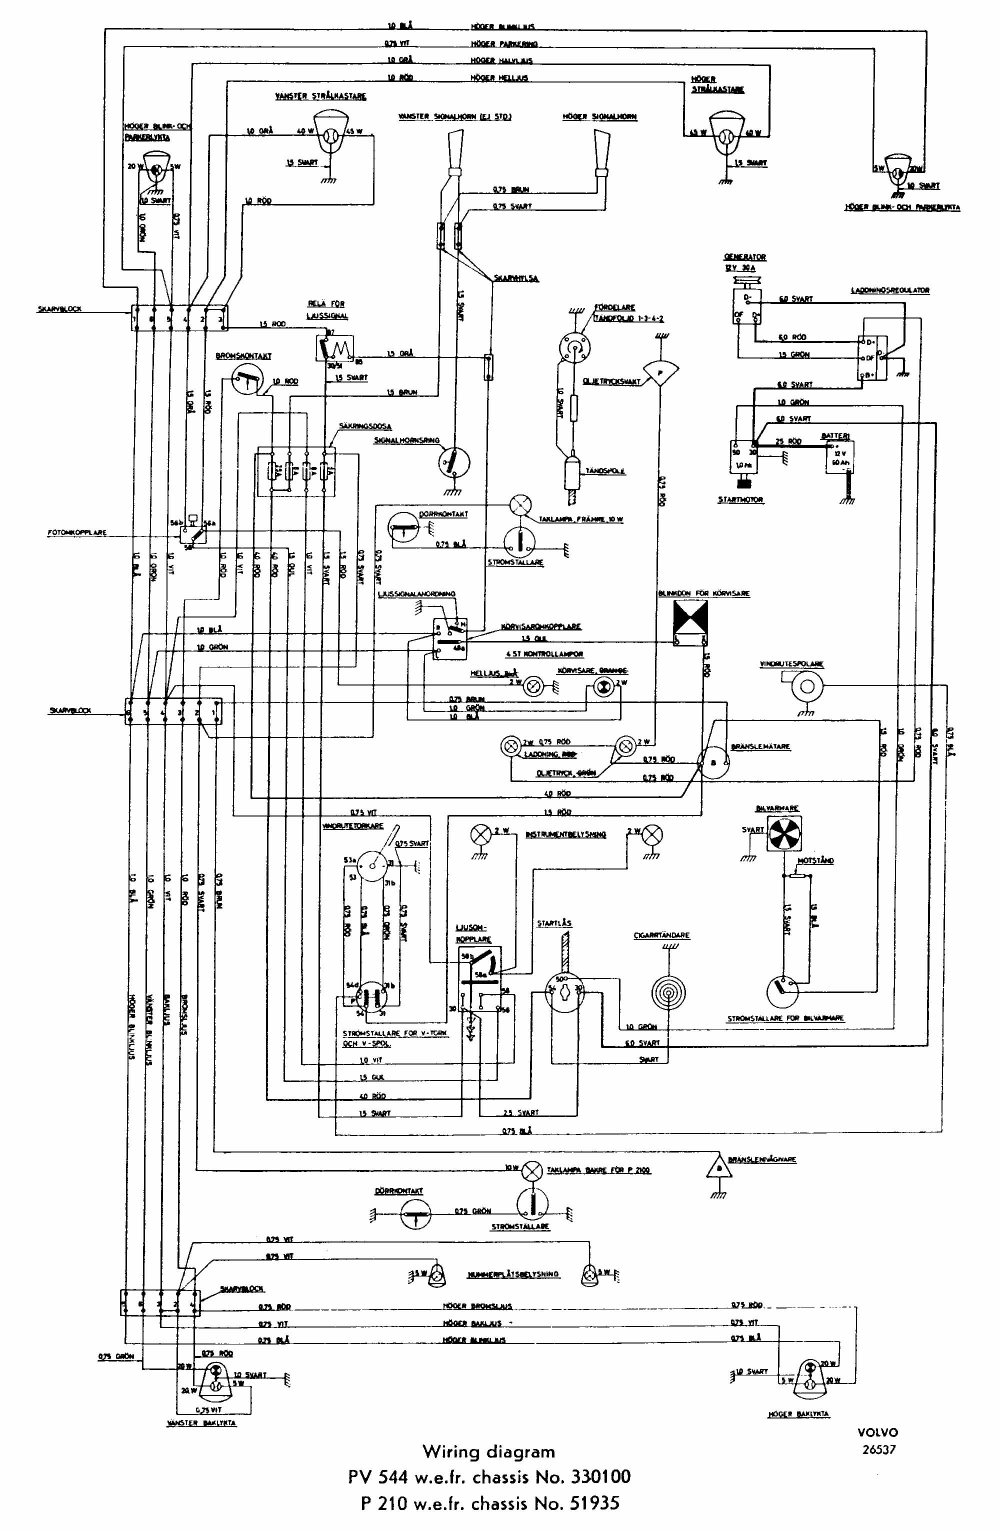 medium resolution of 122s wiring diagram opinions about wiring diagram u2022 rh voterid co volvo s80 wiring diagram